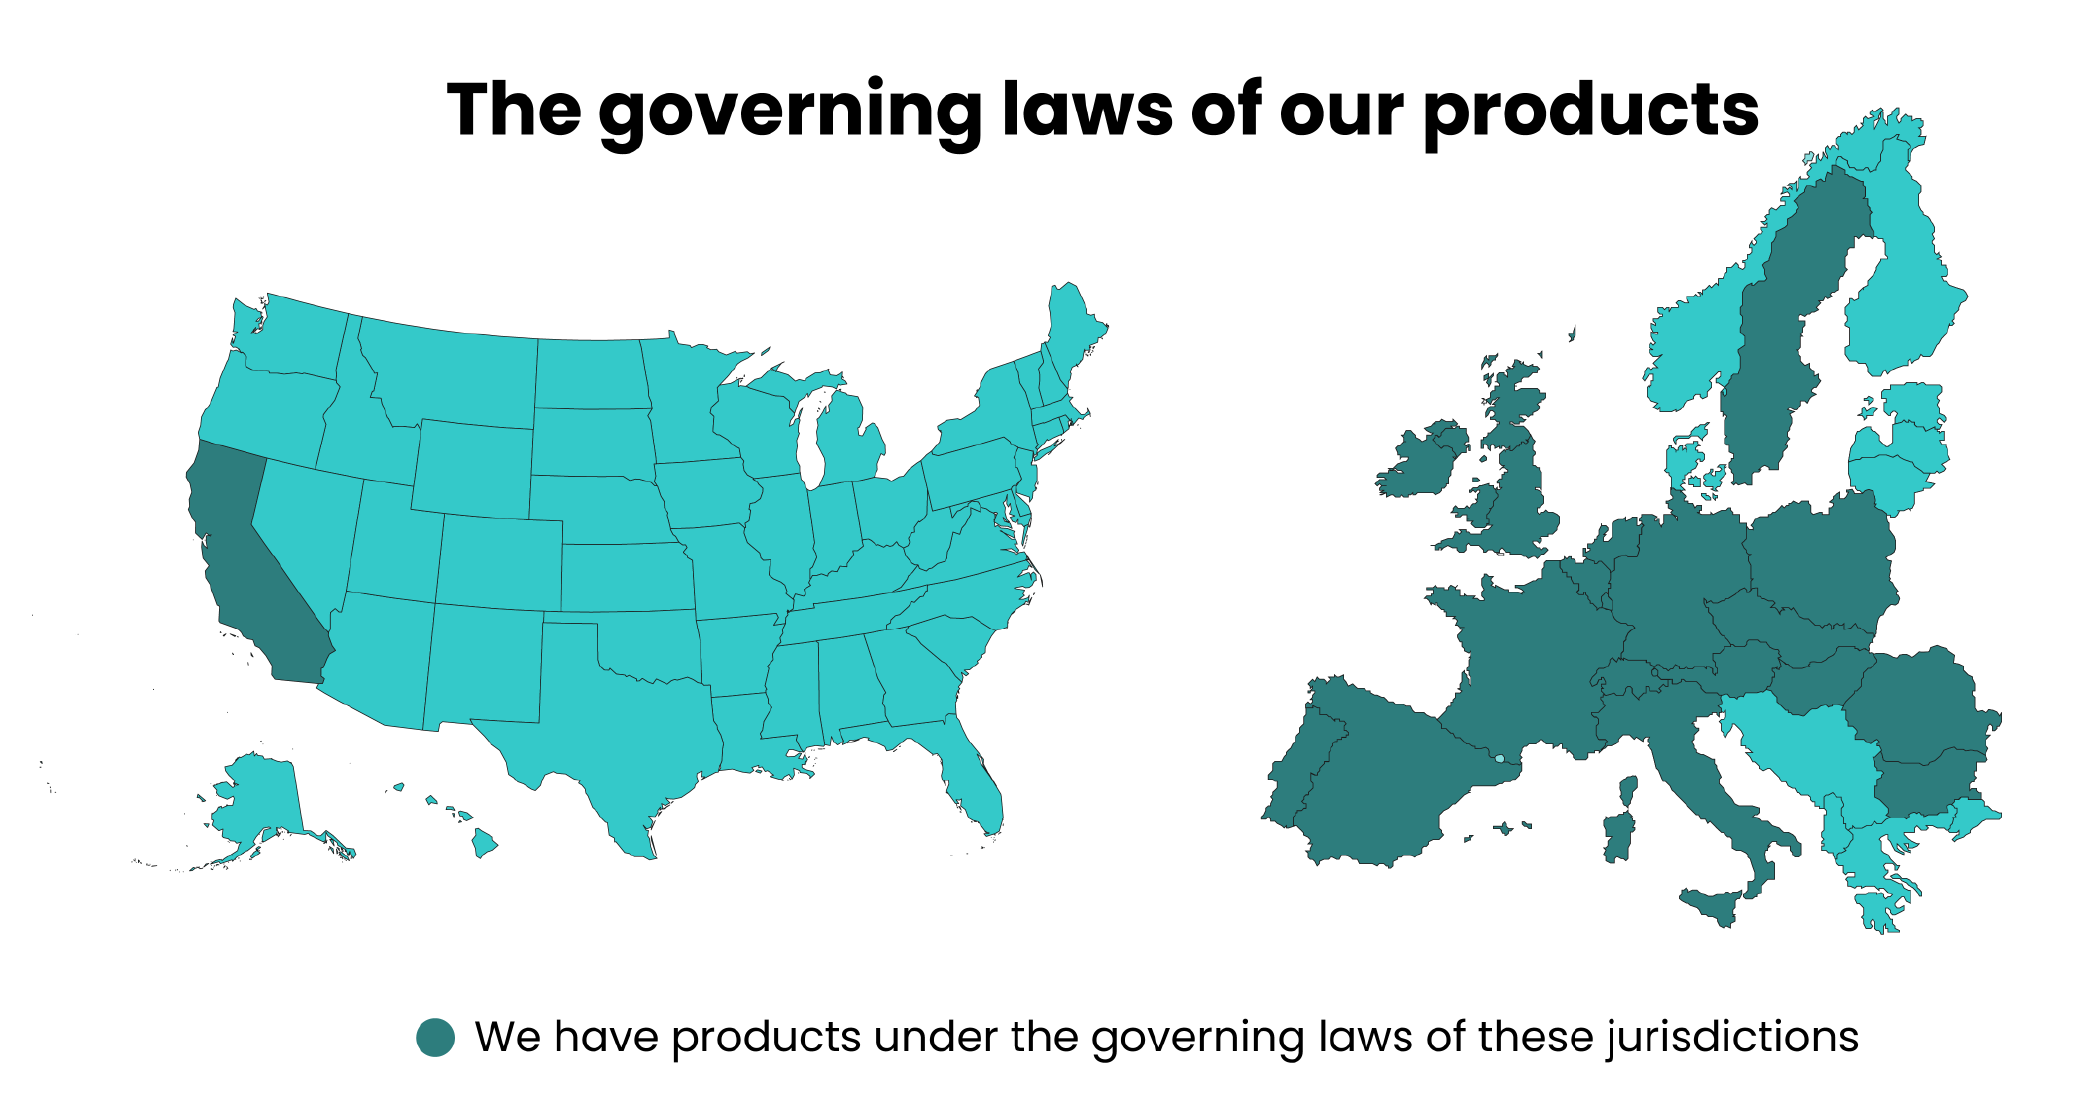 v2-The-governing-laws-of-our-products-01